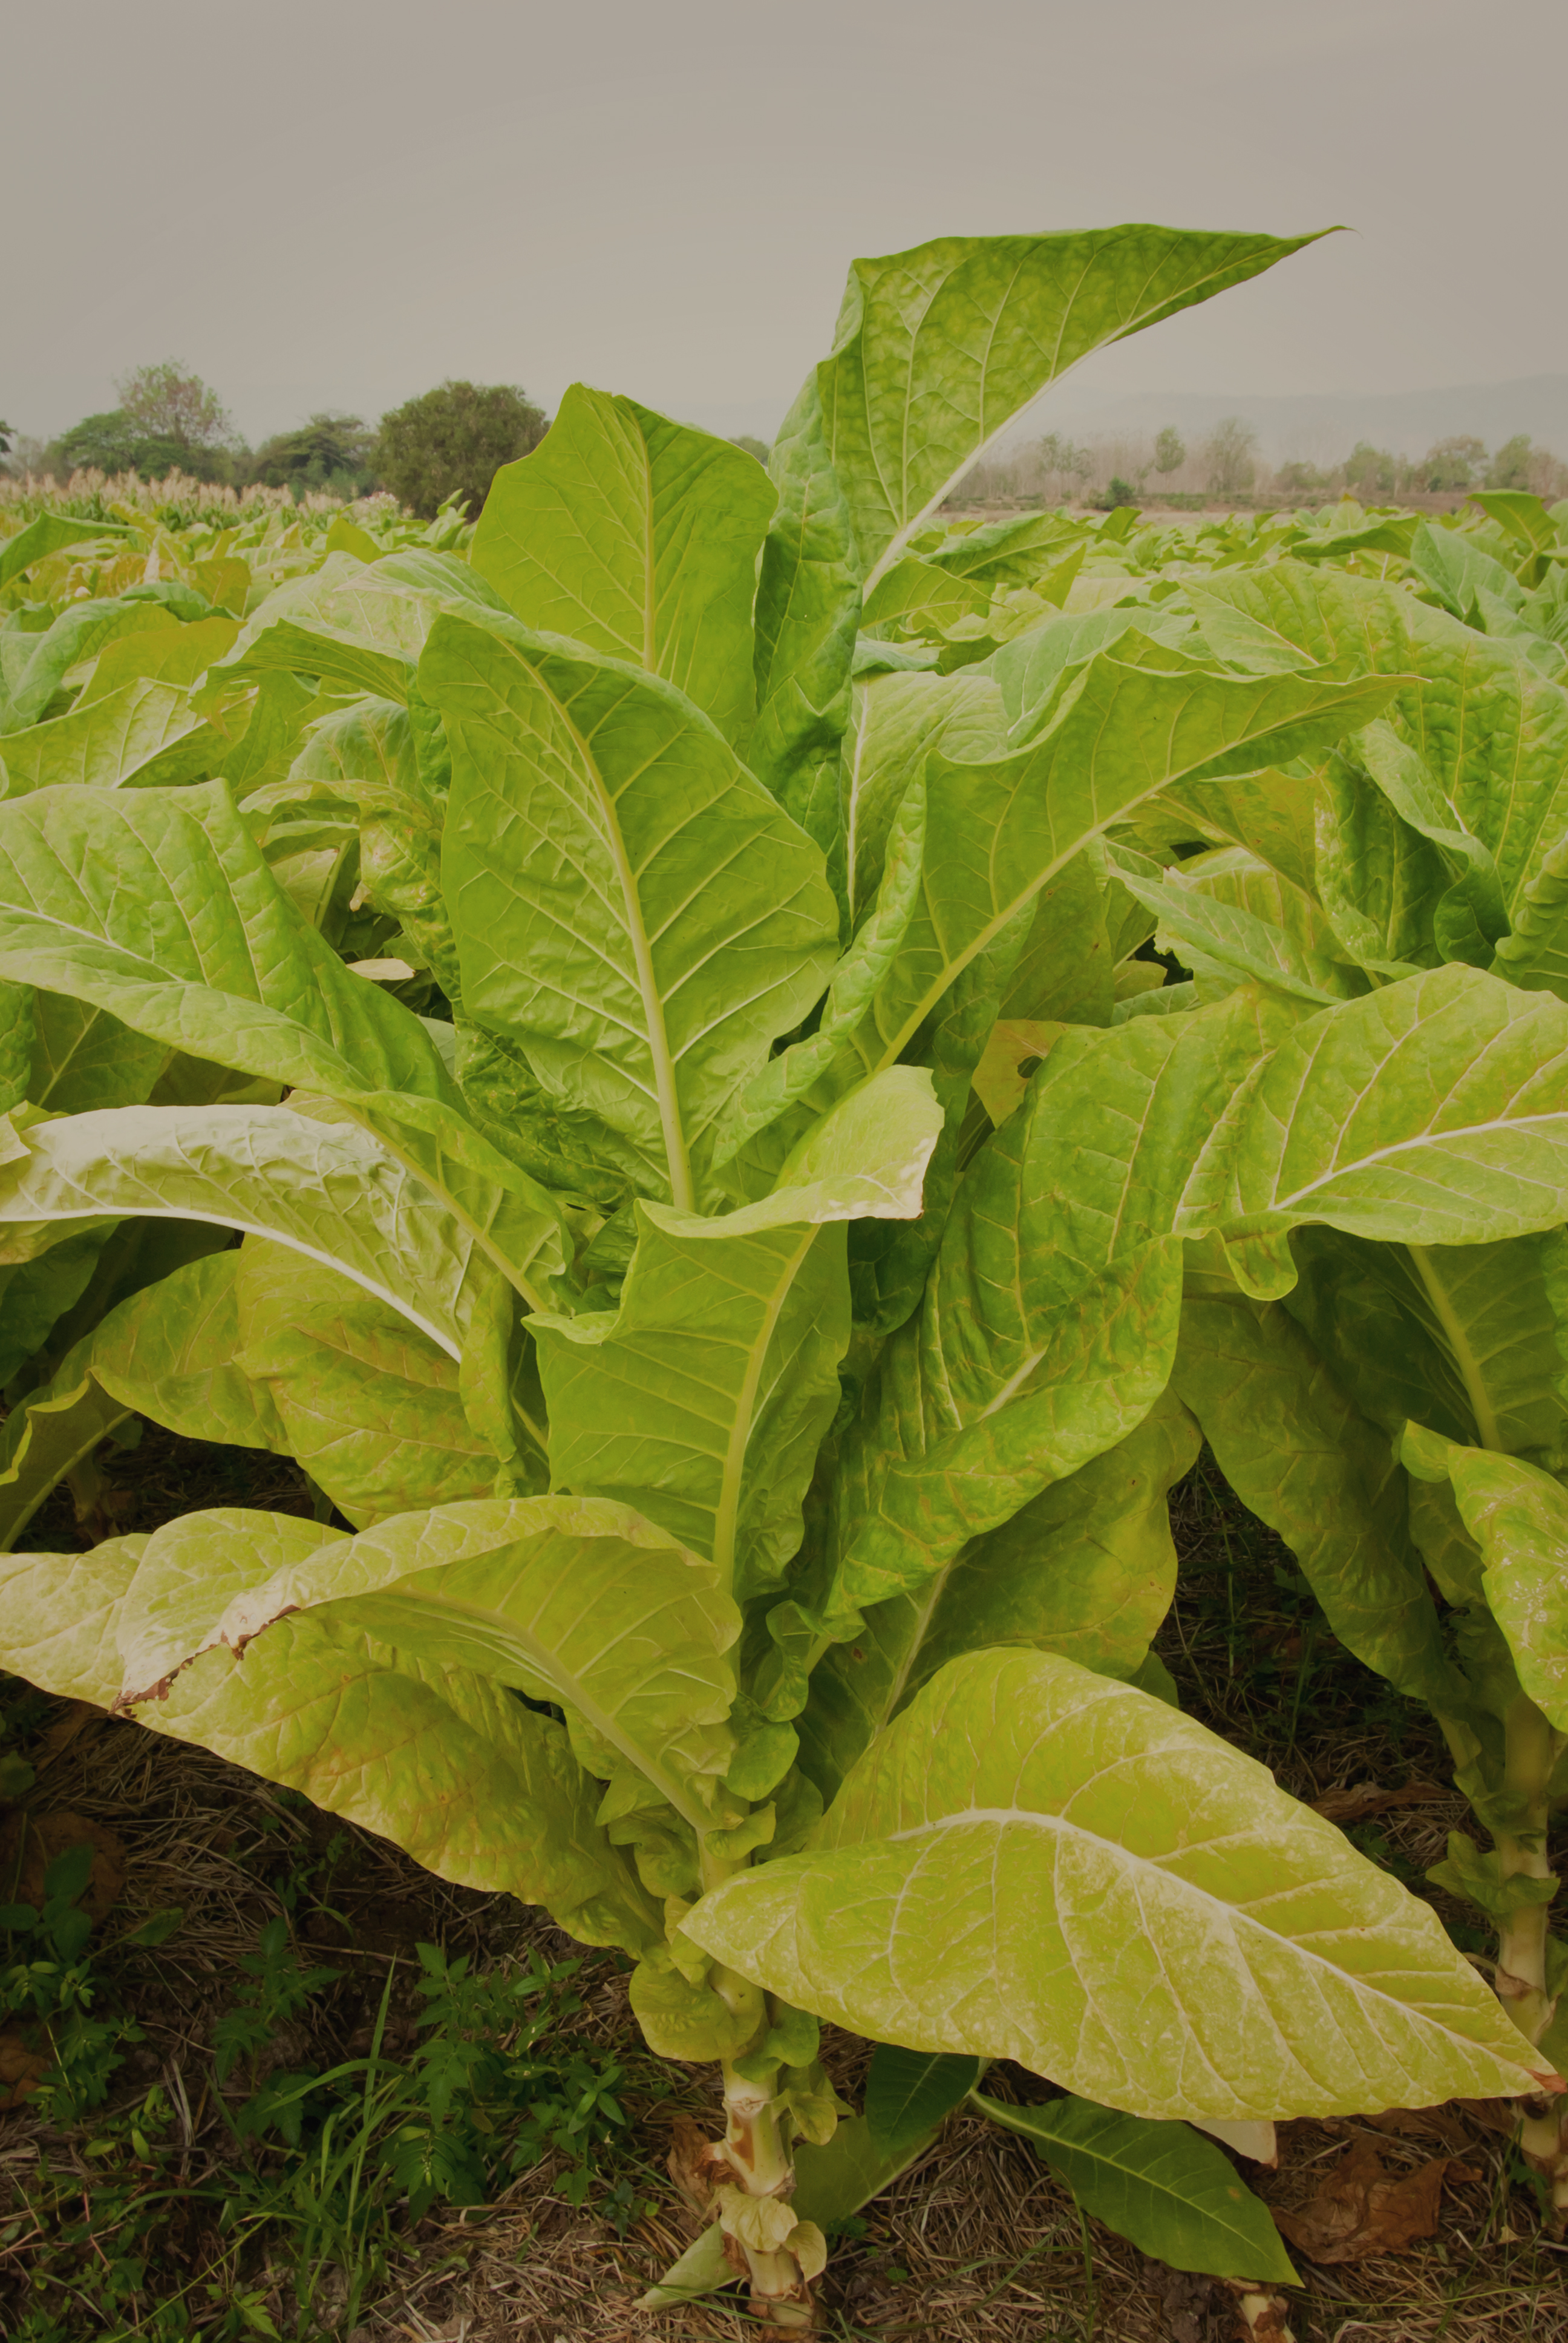 Tobacco and agriculture